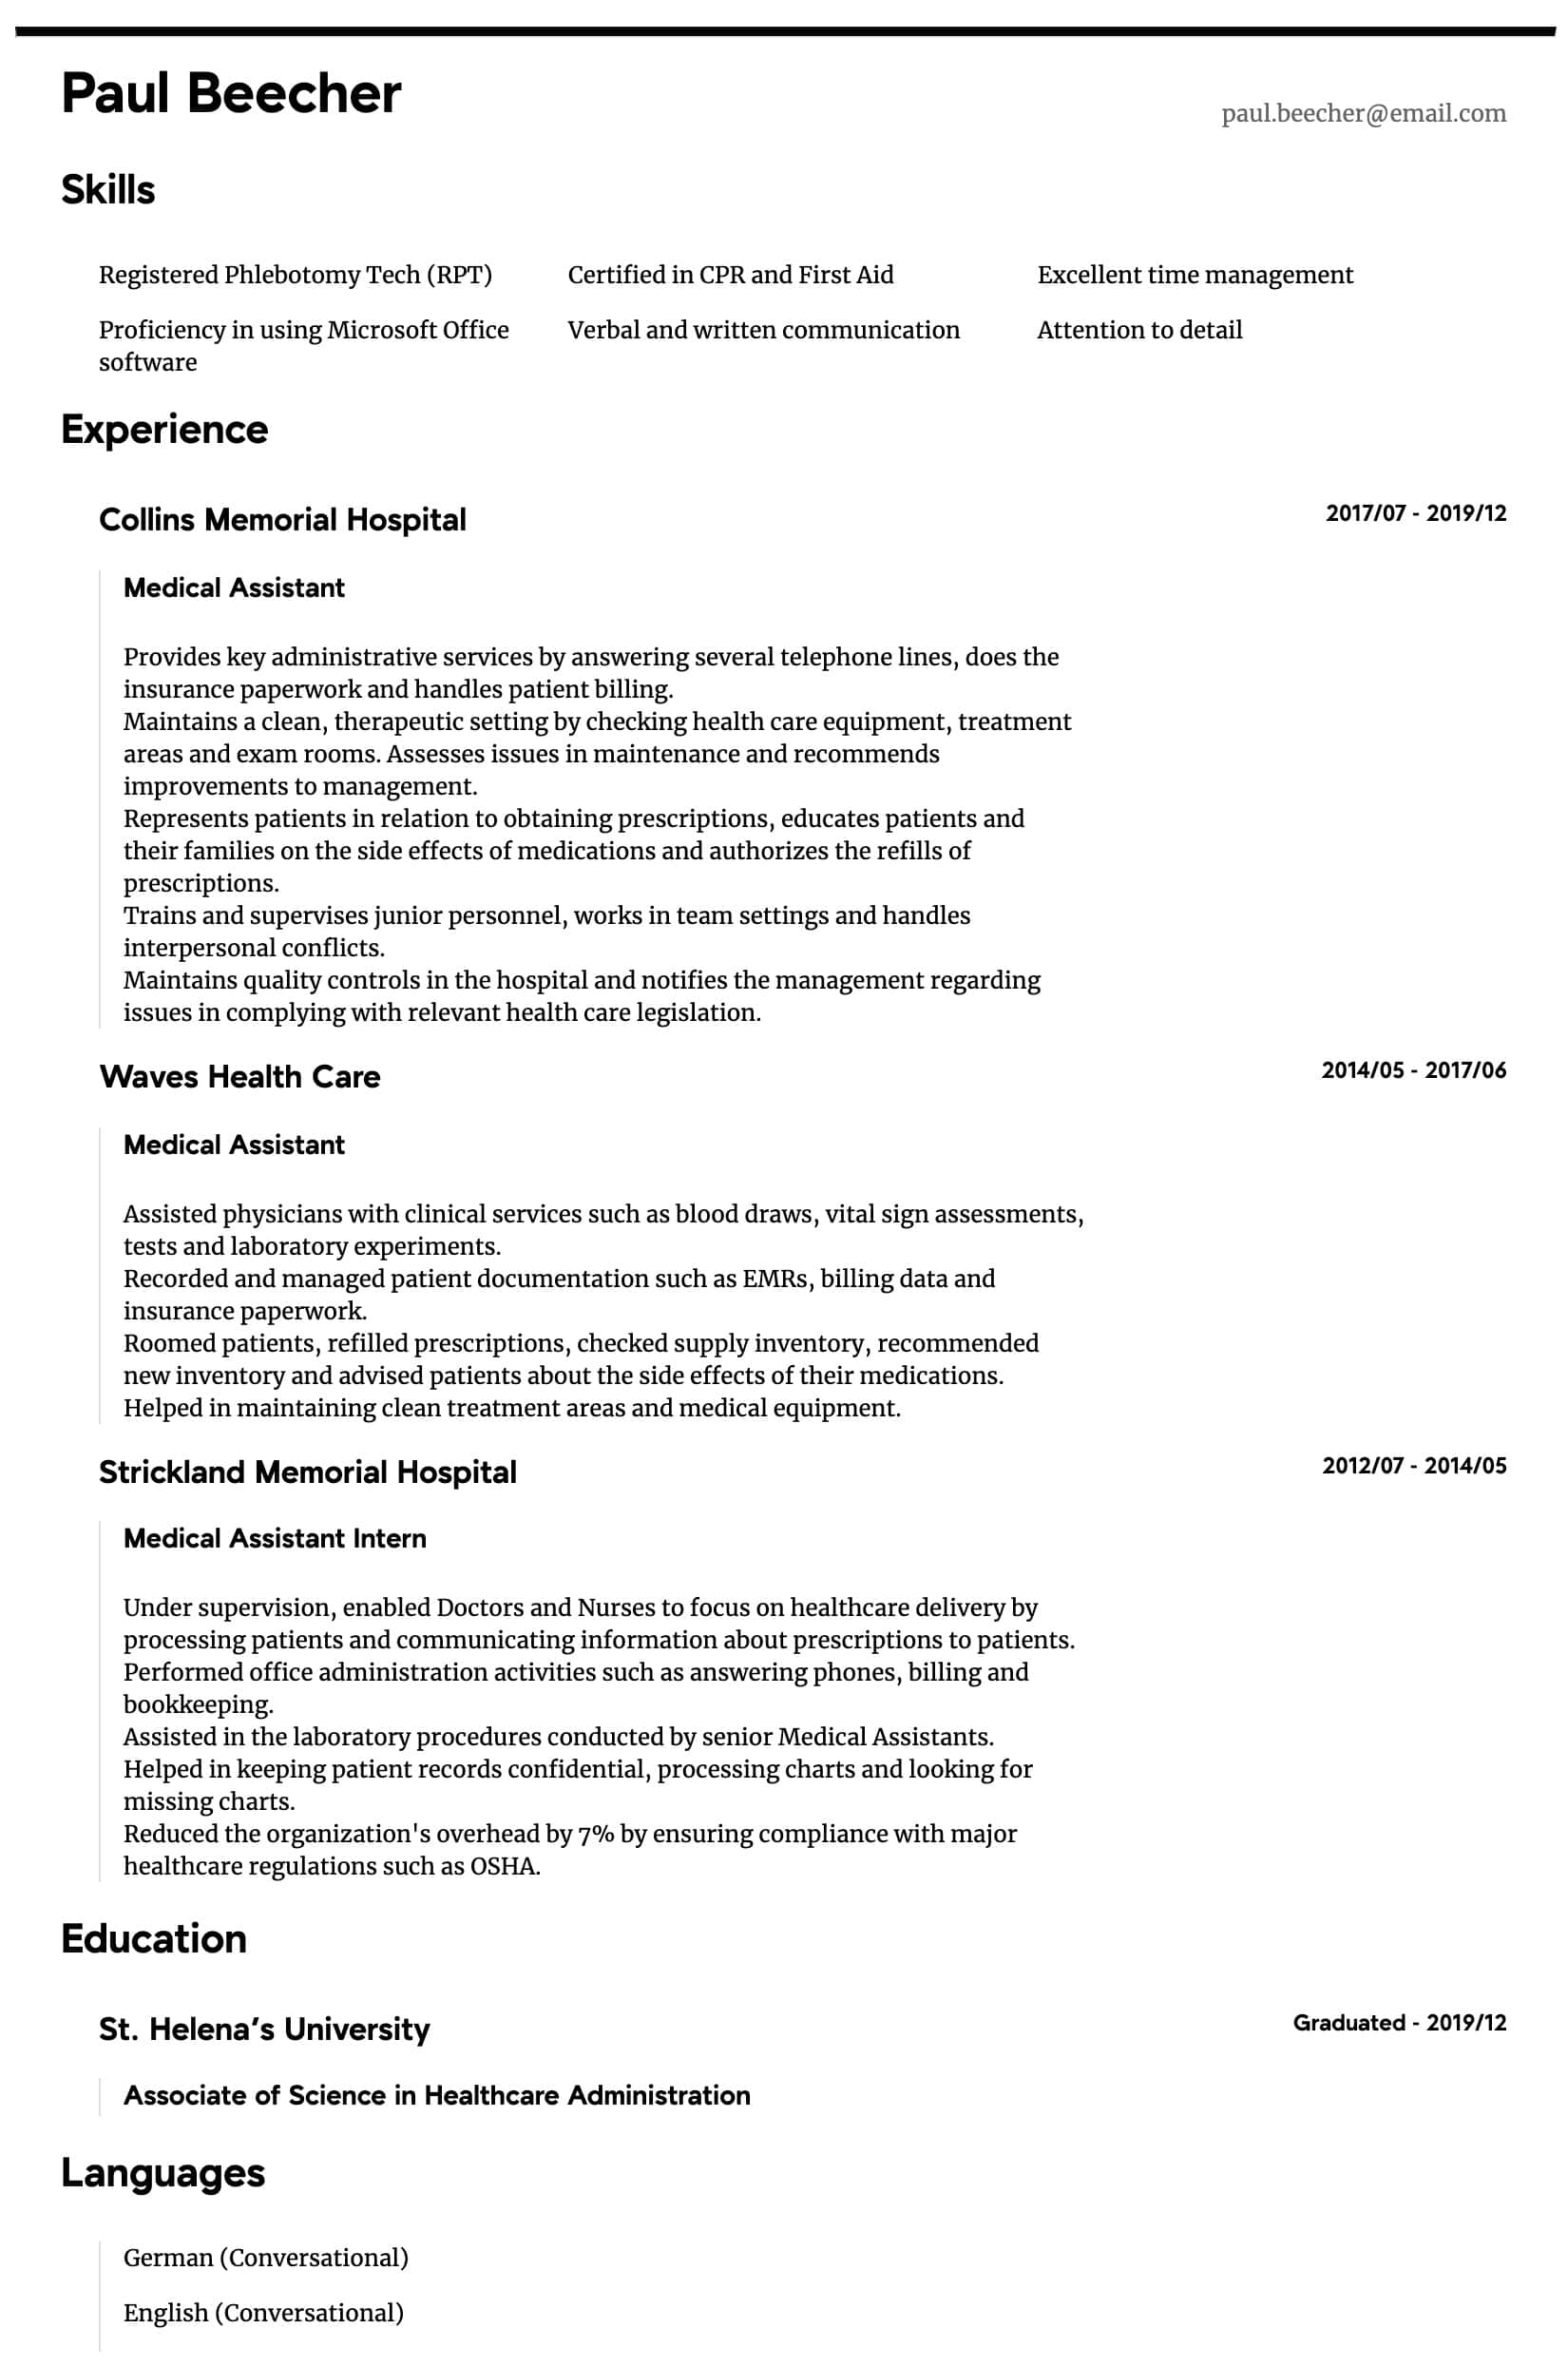 medical assistant resume samples all experience levels intermediate federal ksa examples Resume Medical Assistant Resume 2019